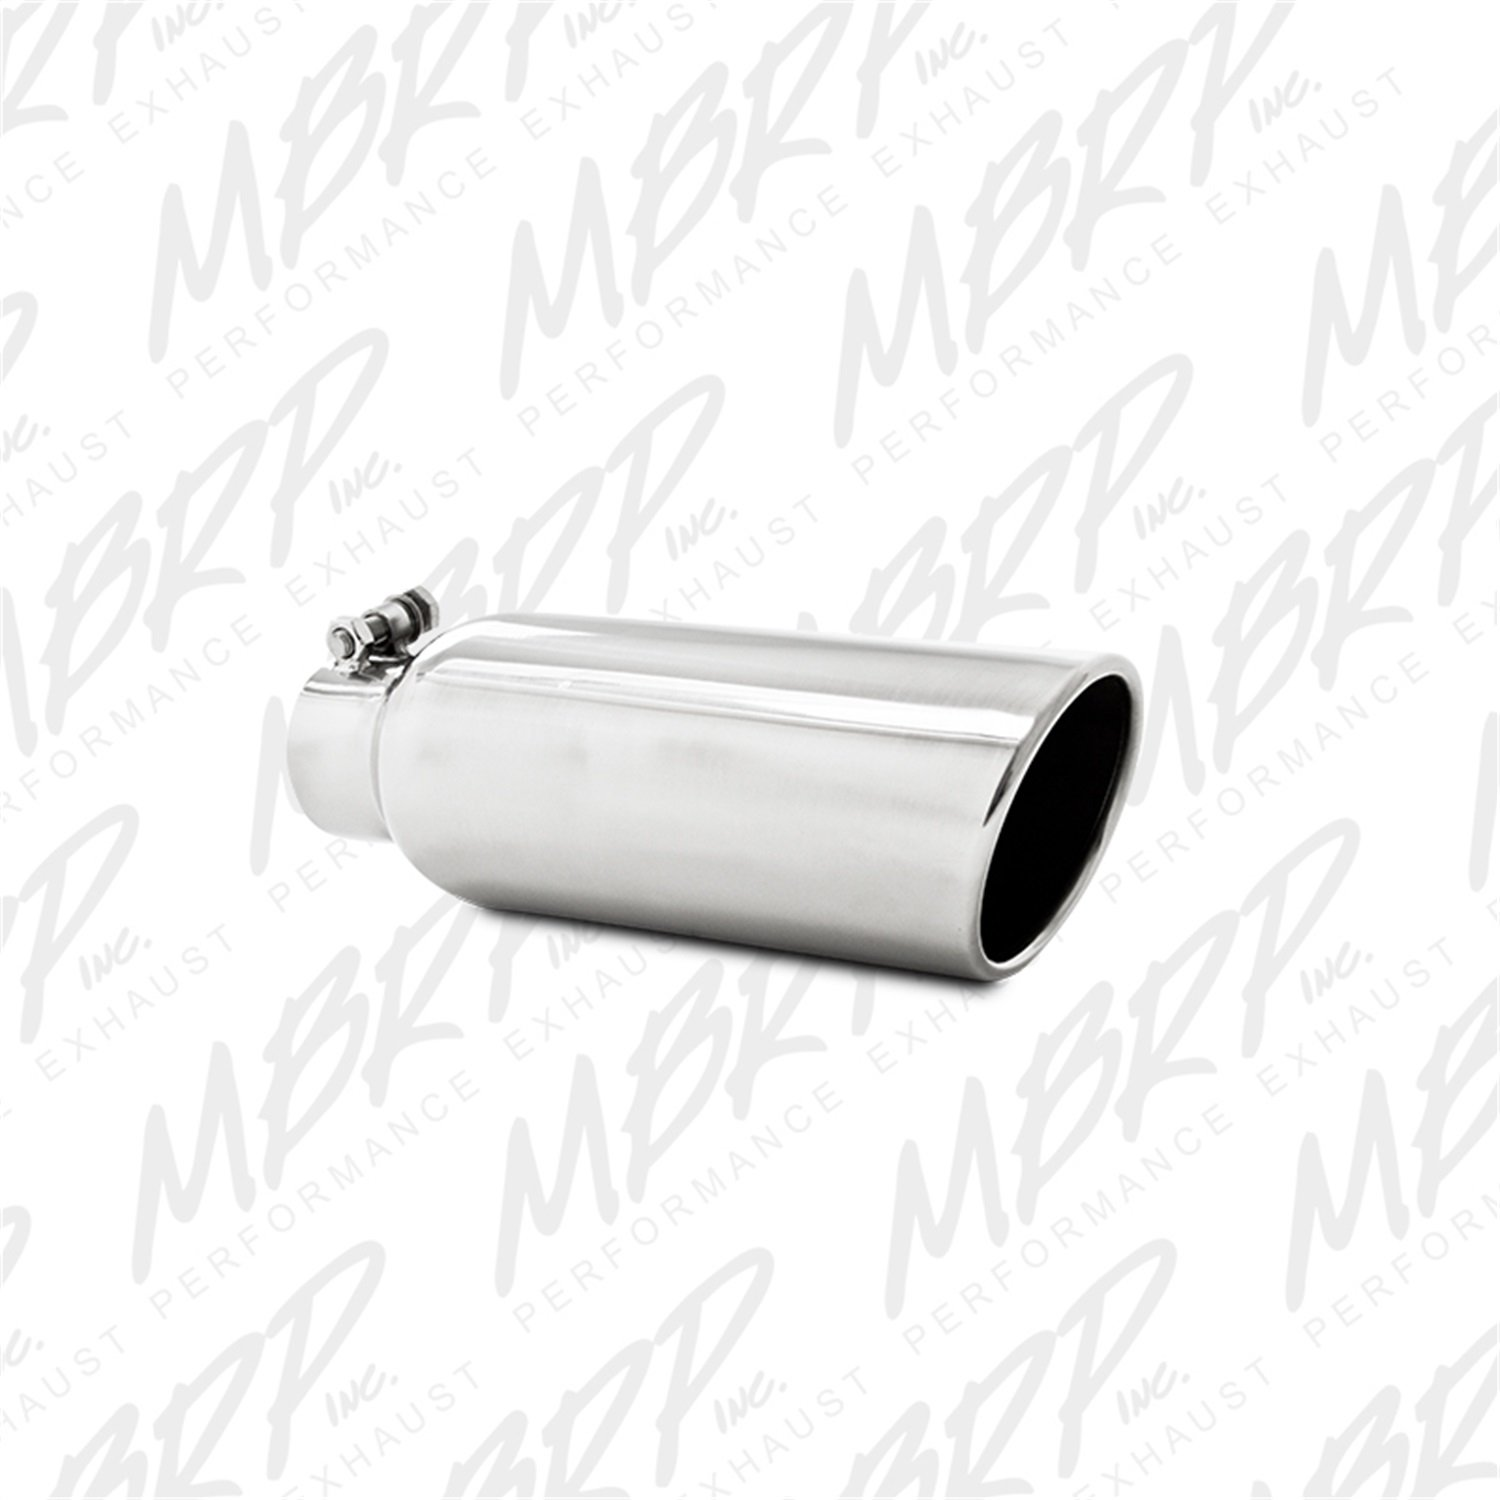 MBRP T5150 4' O.D. 2.5' Inlet 12' Length T304 Stainless Steel Angled Cut Rolled End Clampless Exhaust Tip MBRP Exhaust